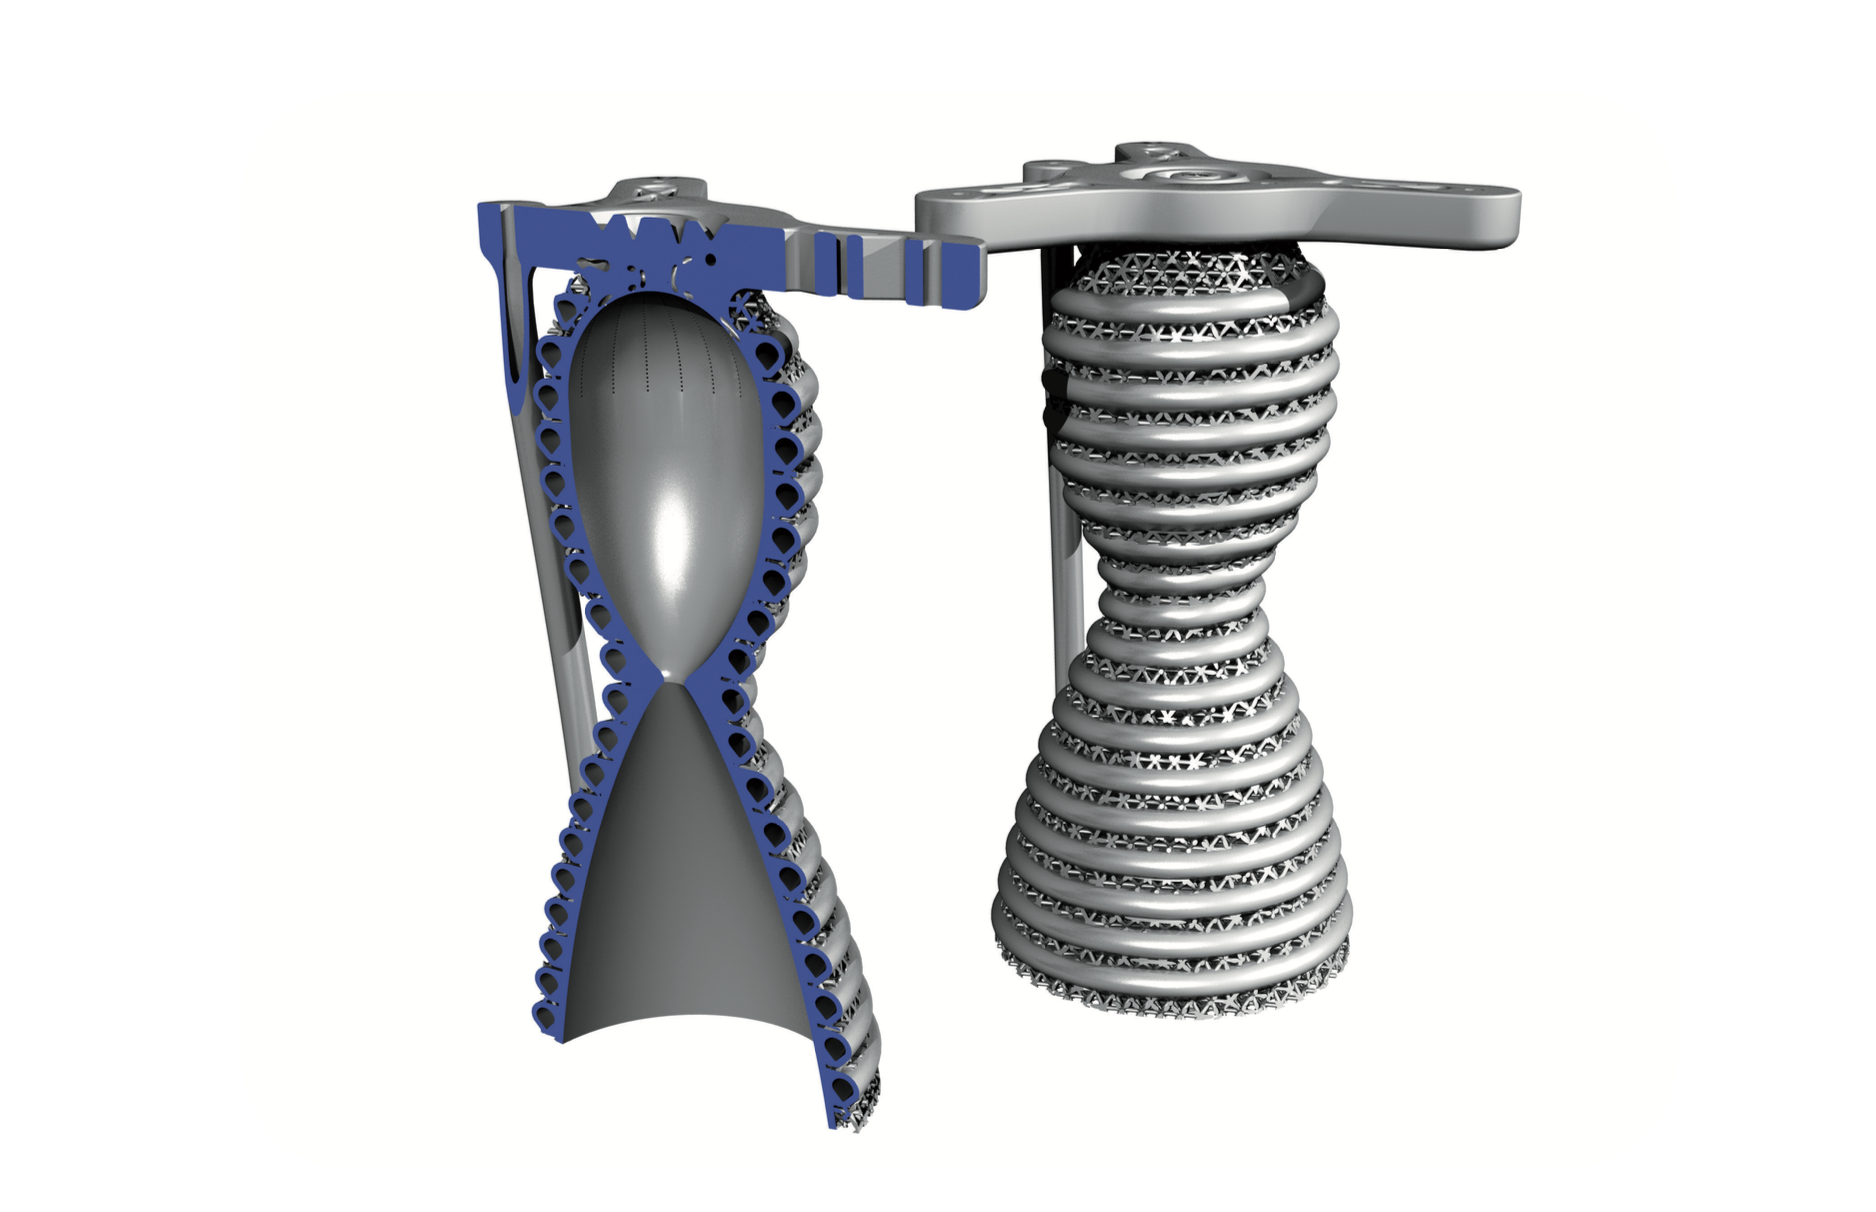 Best Fuel Additive >> Finalists Announced for Additive Industries' Metal 3D Printing Design Contest | 3DPrint.com ...